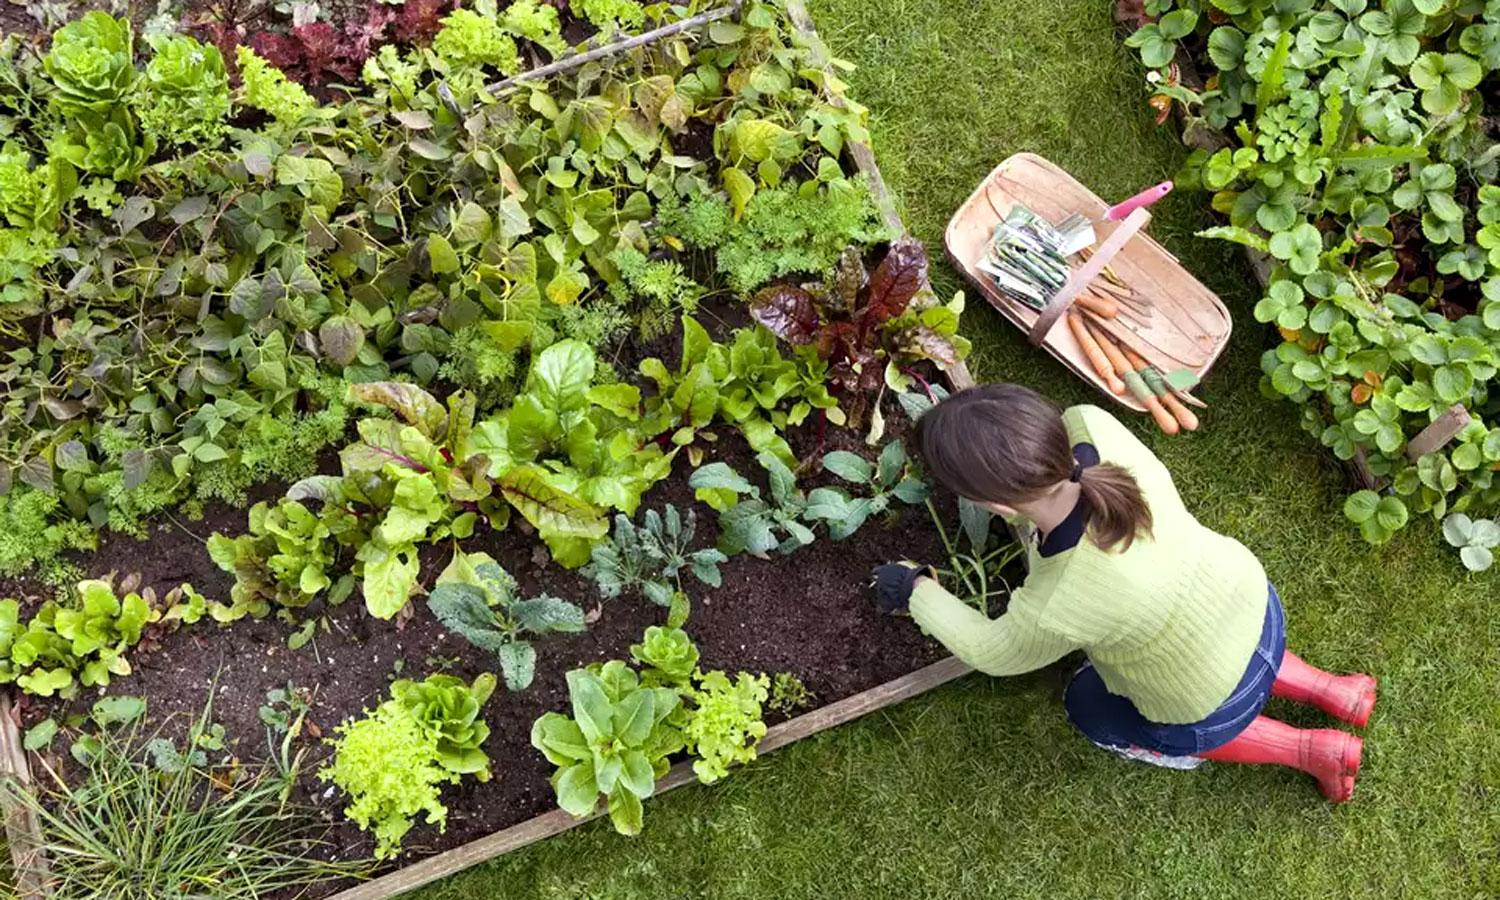 The Climate-Friendly Gardener | Union of Concerned Scientists